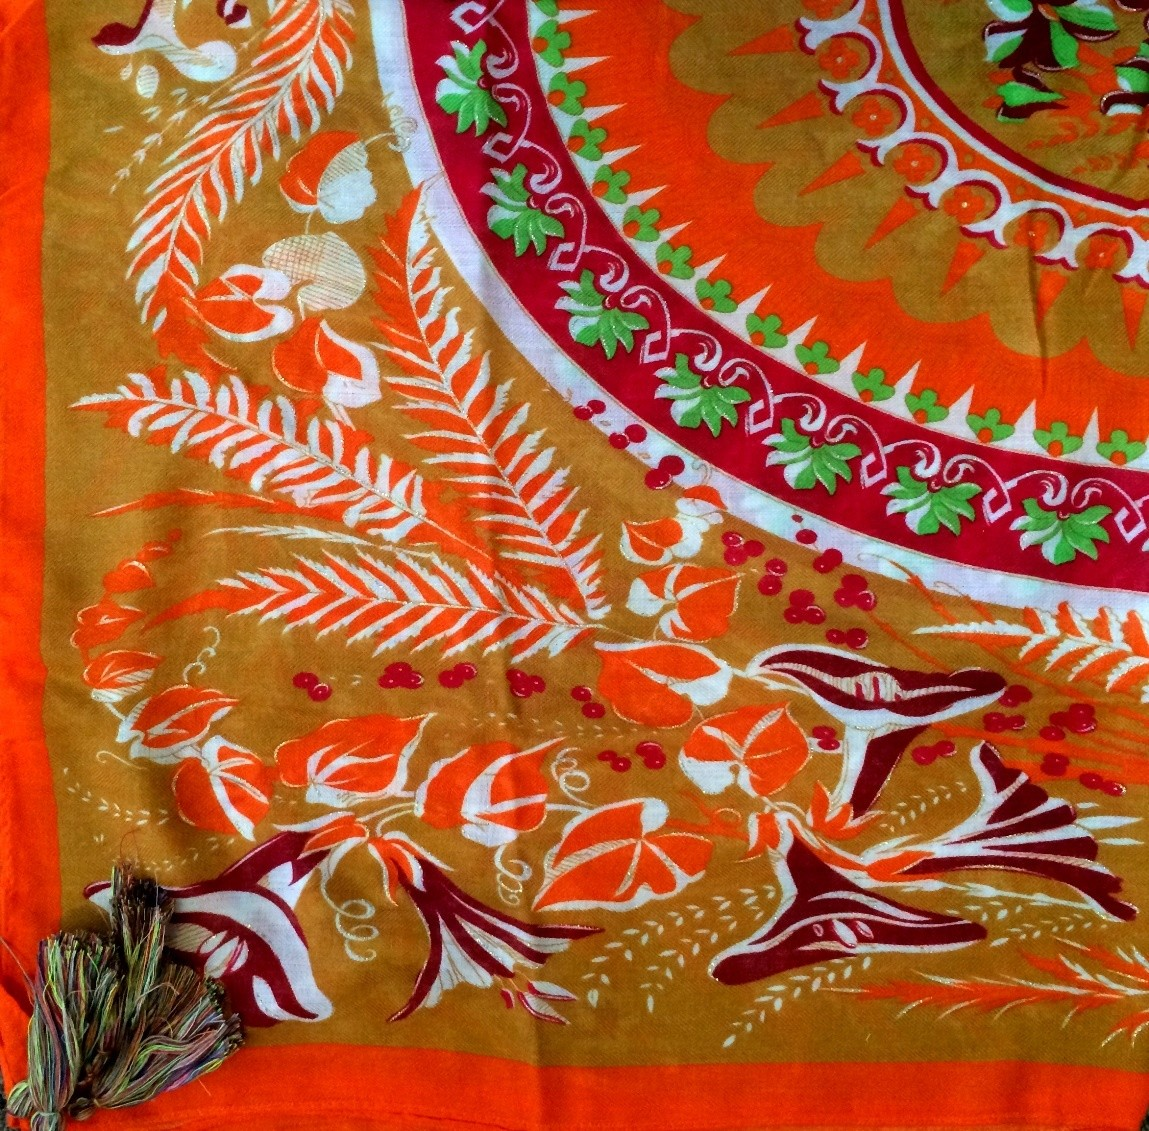 Orange creamsicle soft tichel with floral pattern